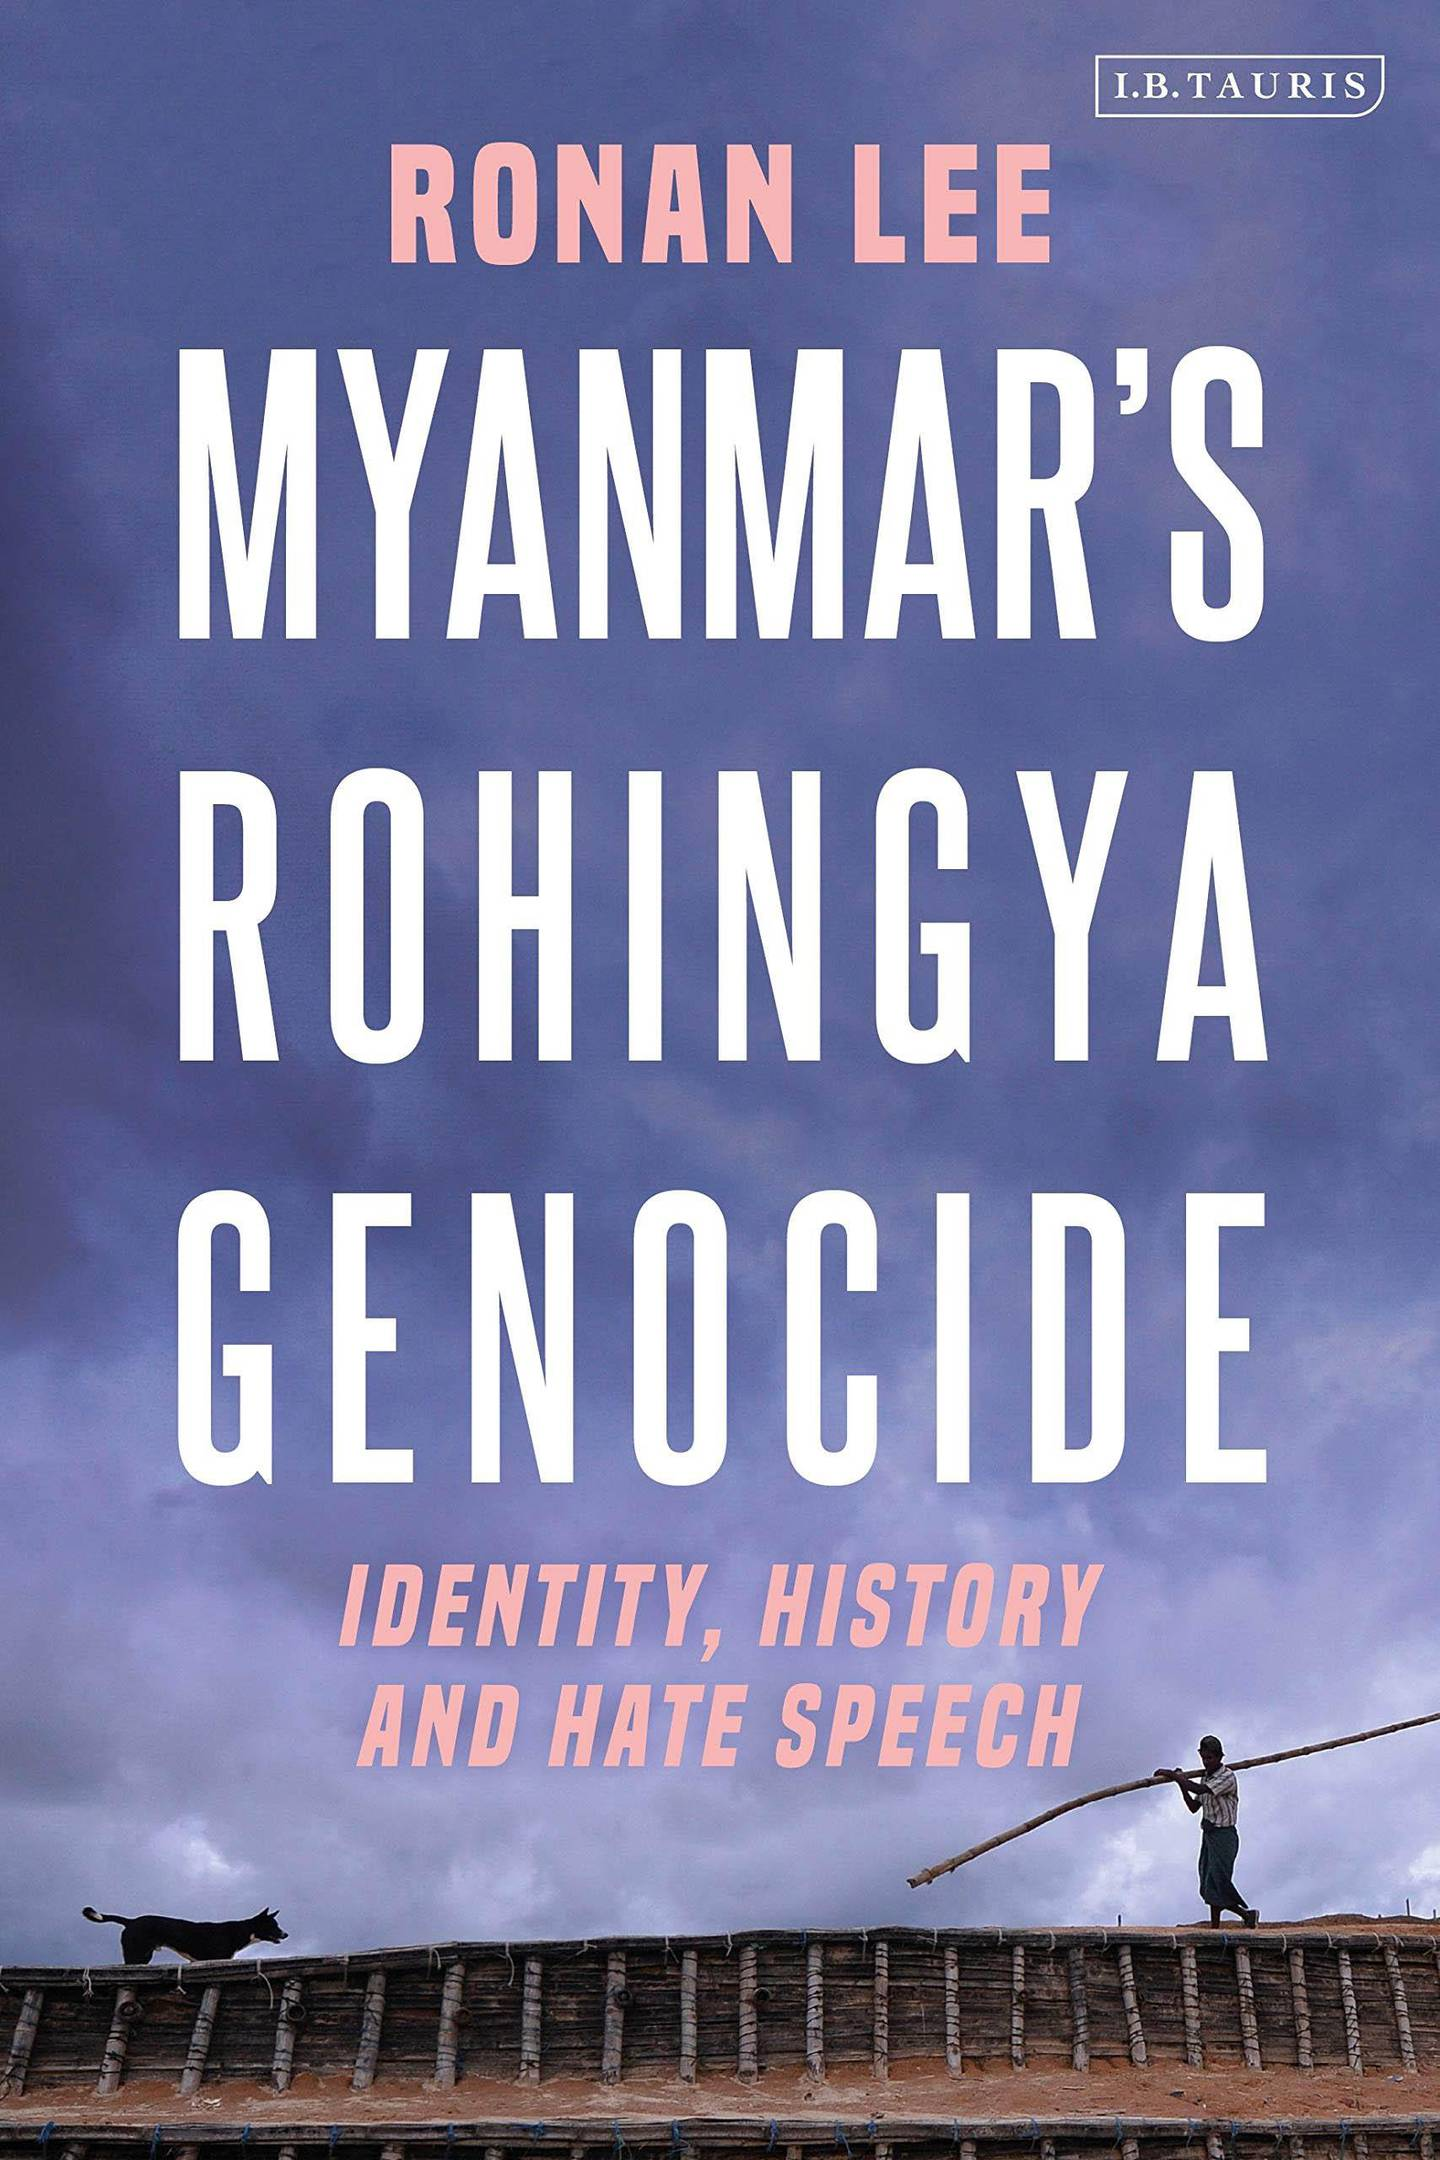 Myanmars Rohingya Genocide: Identity, History and Hate Speech published by I.B. Tauris. Courtesy Bloomsbury